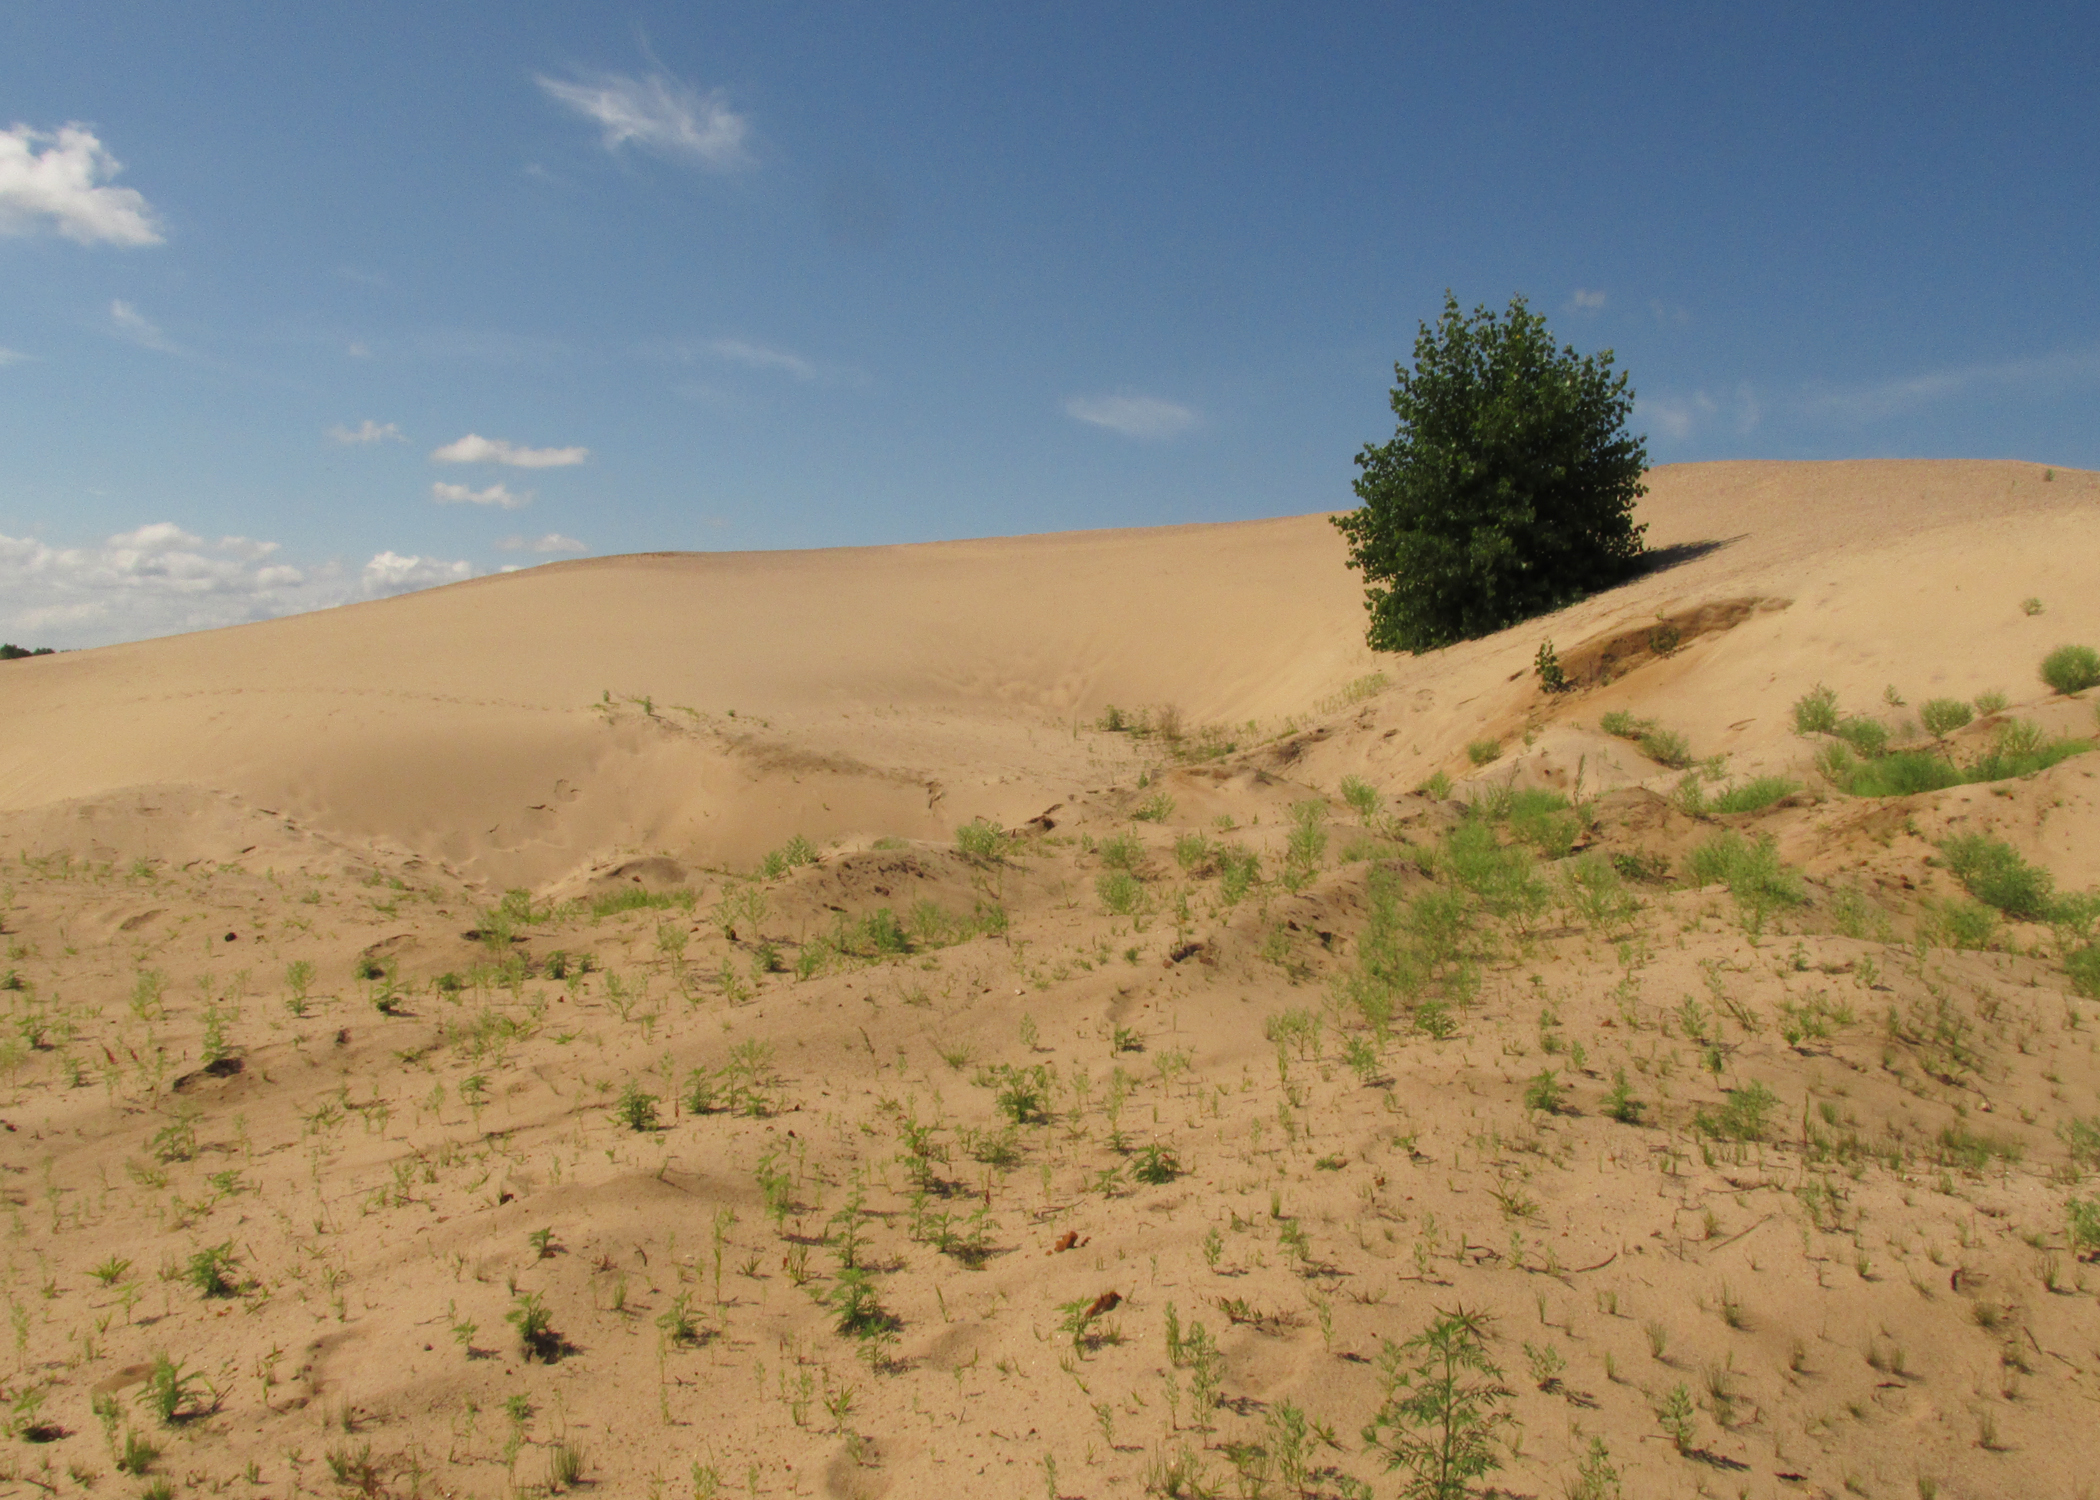 There are ghosts on these sand hills...